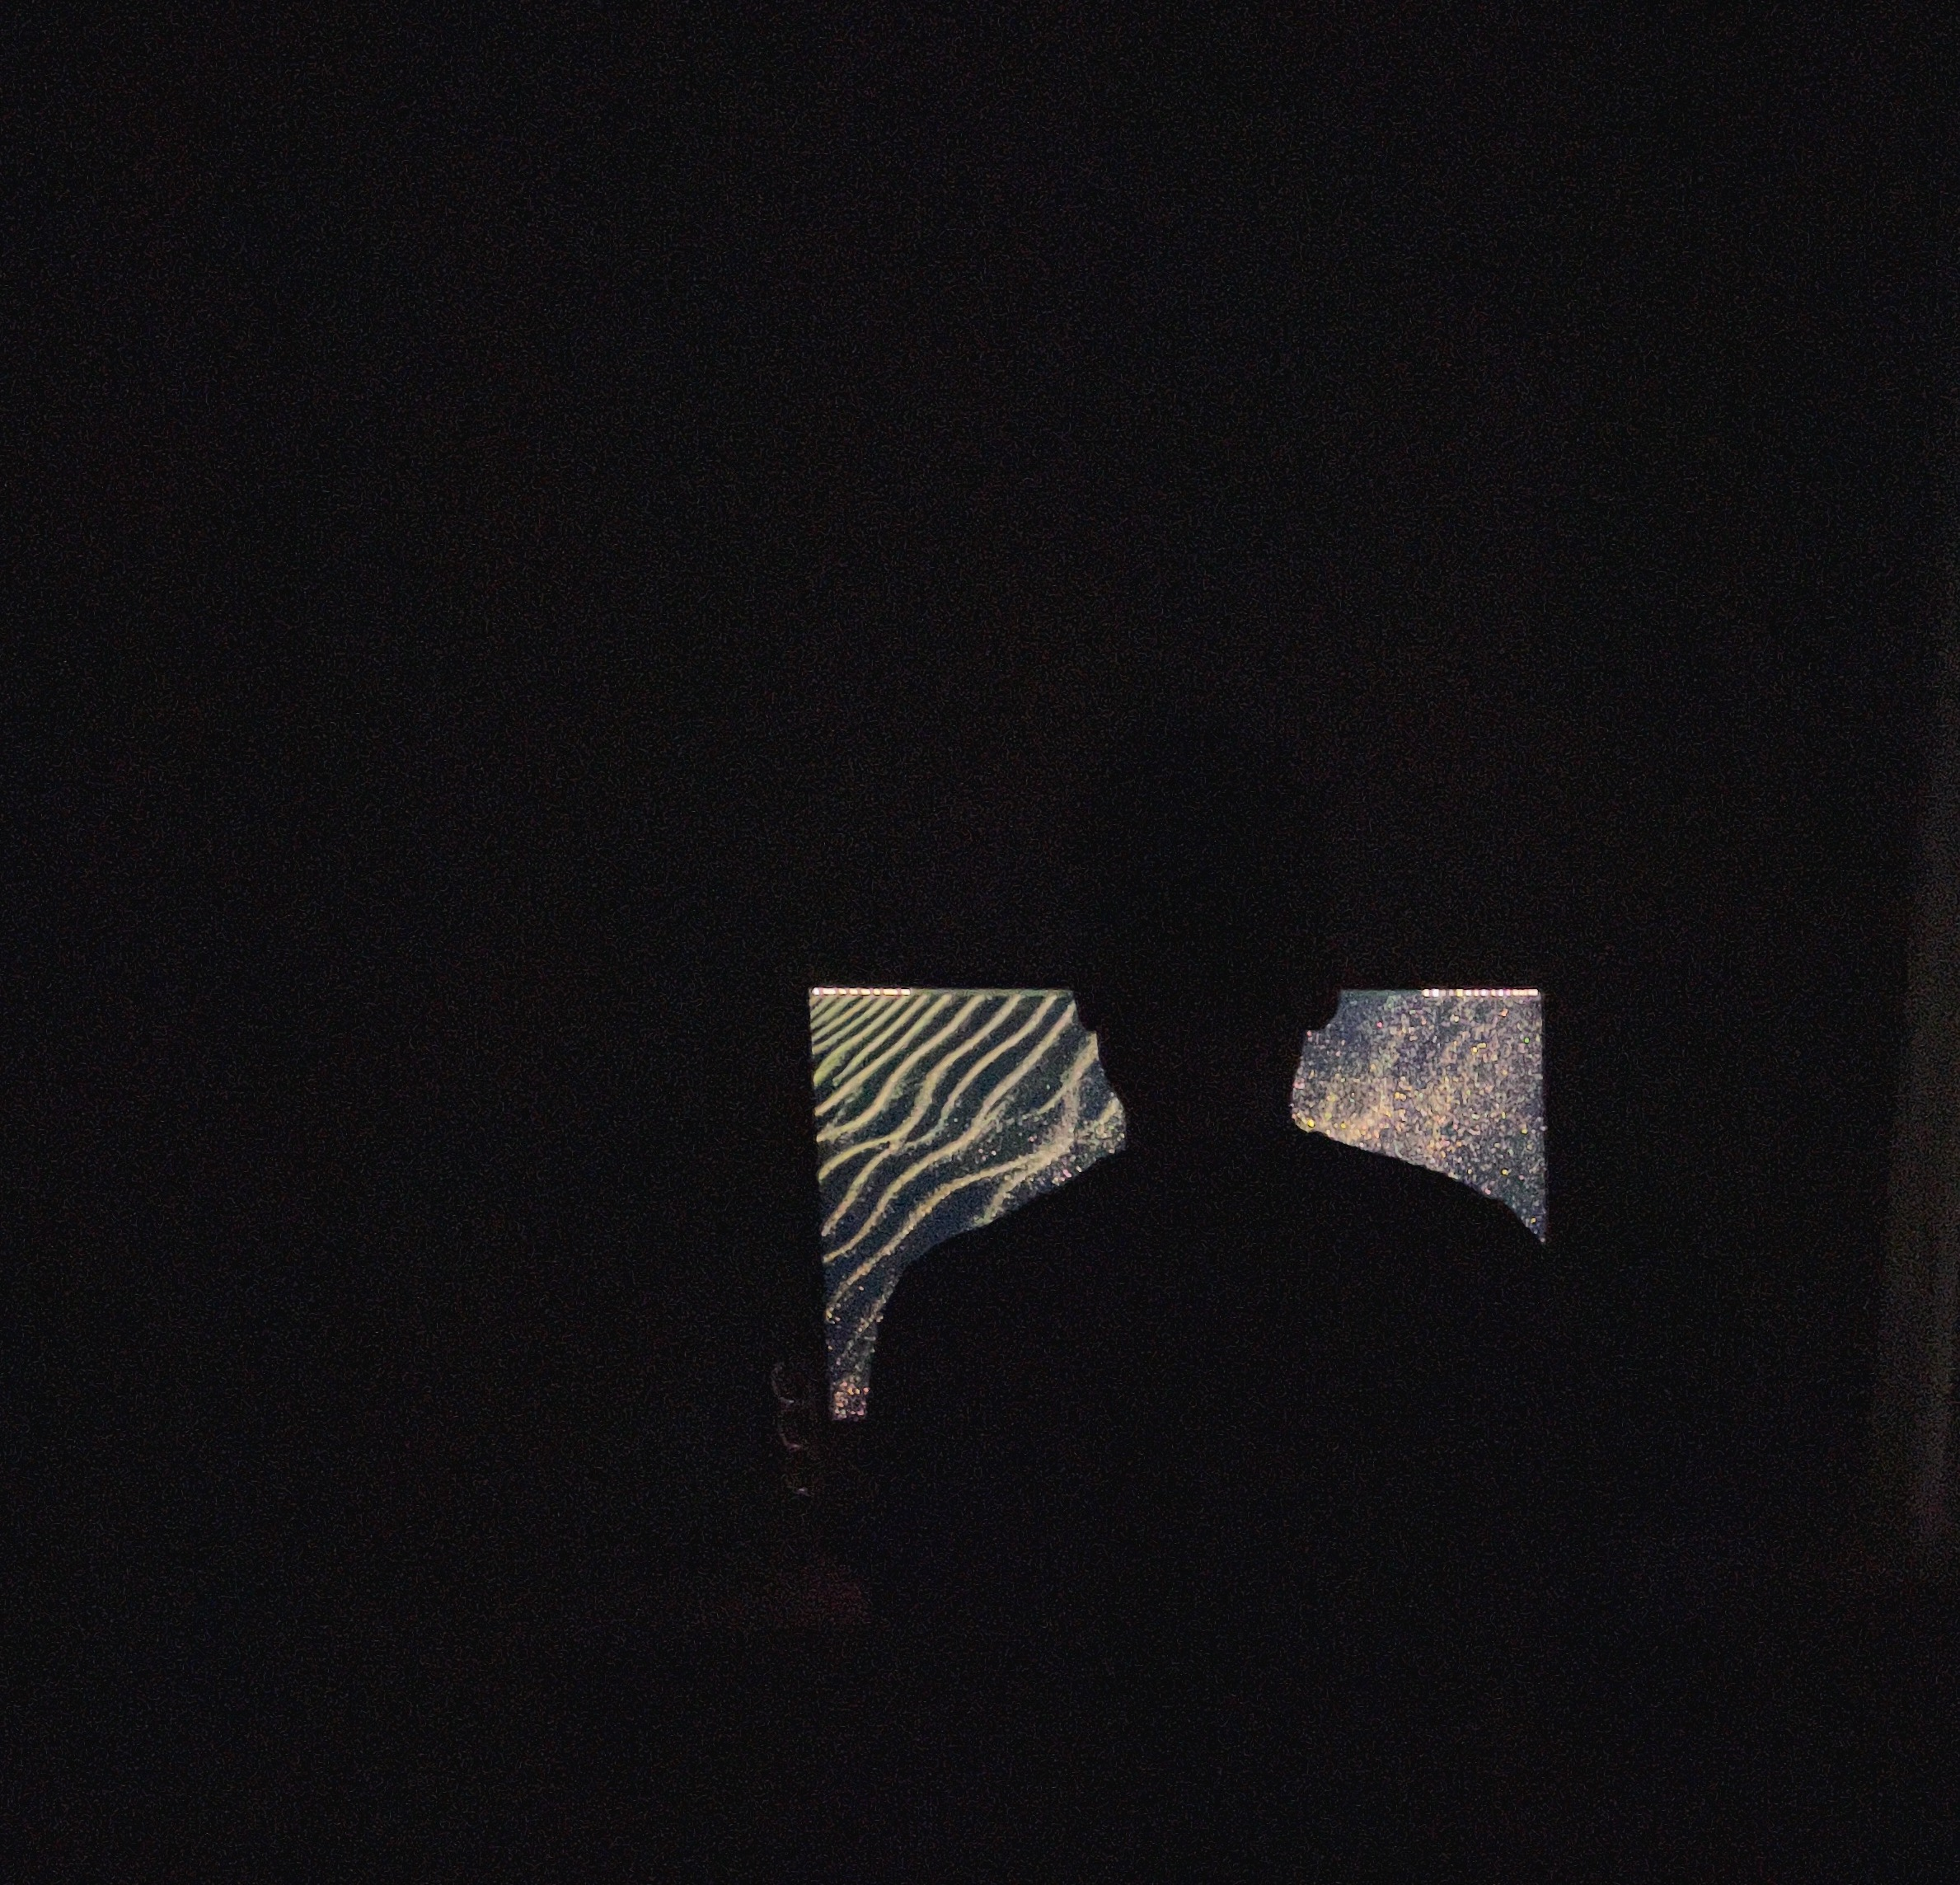 A photo behind a man sitting in the dark on his computer